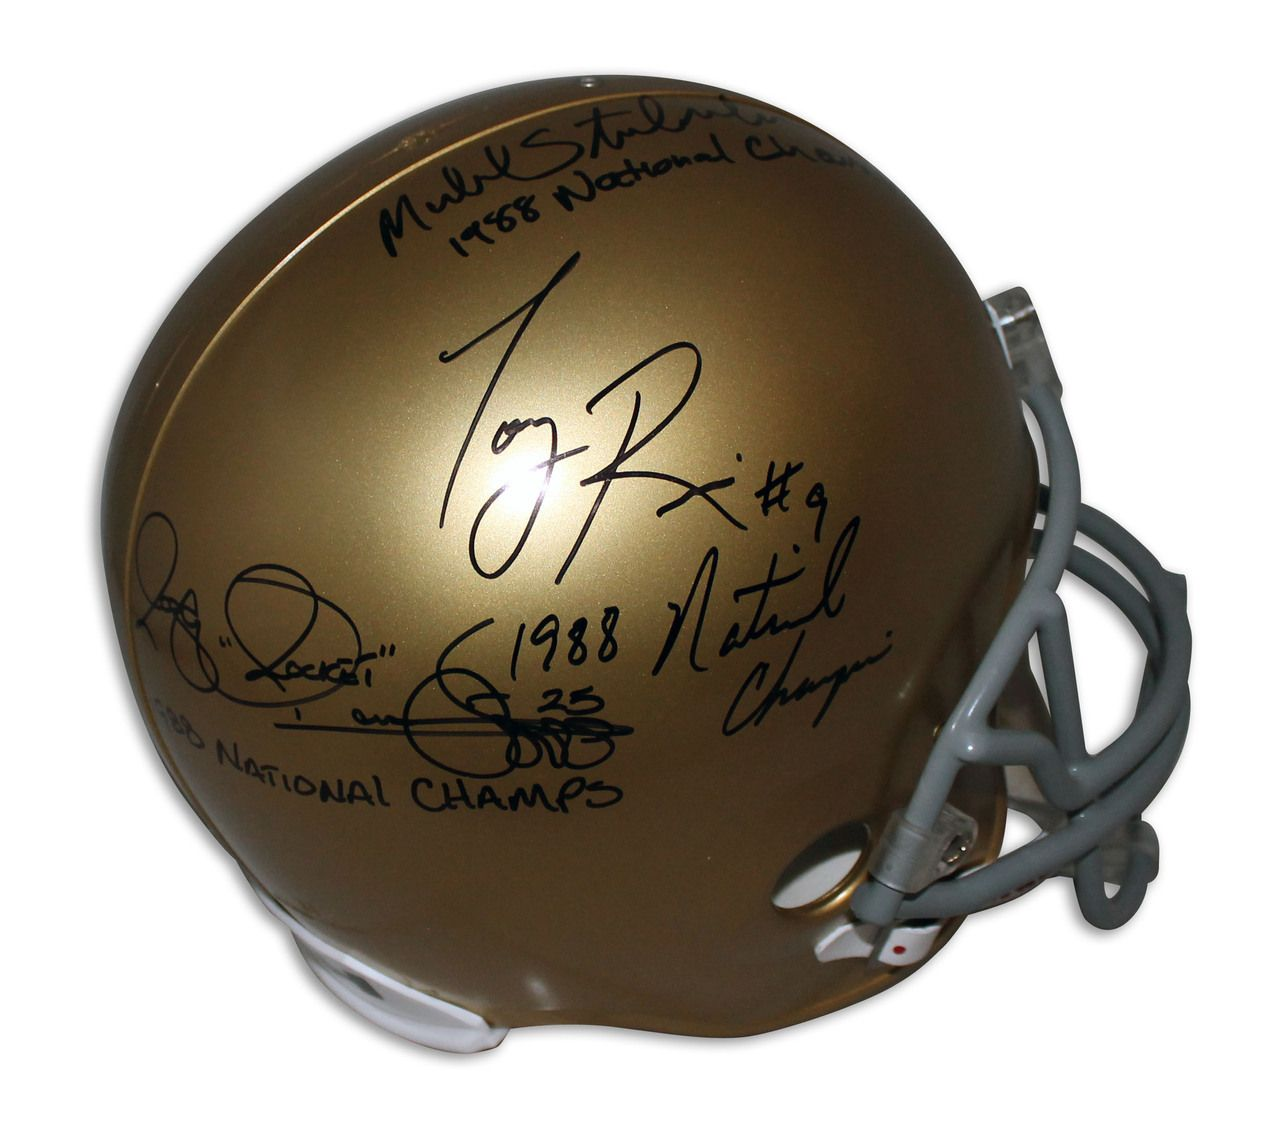 """AAA Sports Memorabilia LLC - Notre Dame Fighting Irish Replica Helmet Autographed and Inscribed by: Raghib """"Rocket"""" Ismail """"1988 National Champs"""", Tony Rice """"1988 National Champs"""" #raghibismail #tonyrice #notredame #fightingirish #notredamefightingirish #ncaa #ncaacollectibles #sportsmemorabilia #sportscollectibles #autographed"""